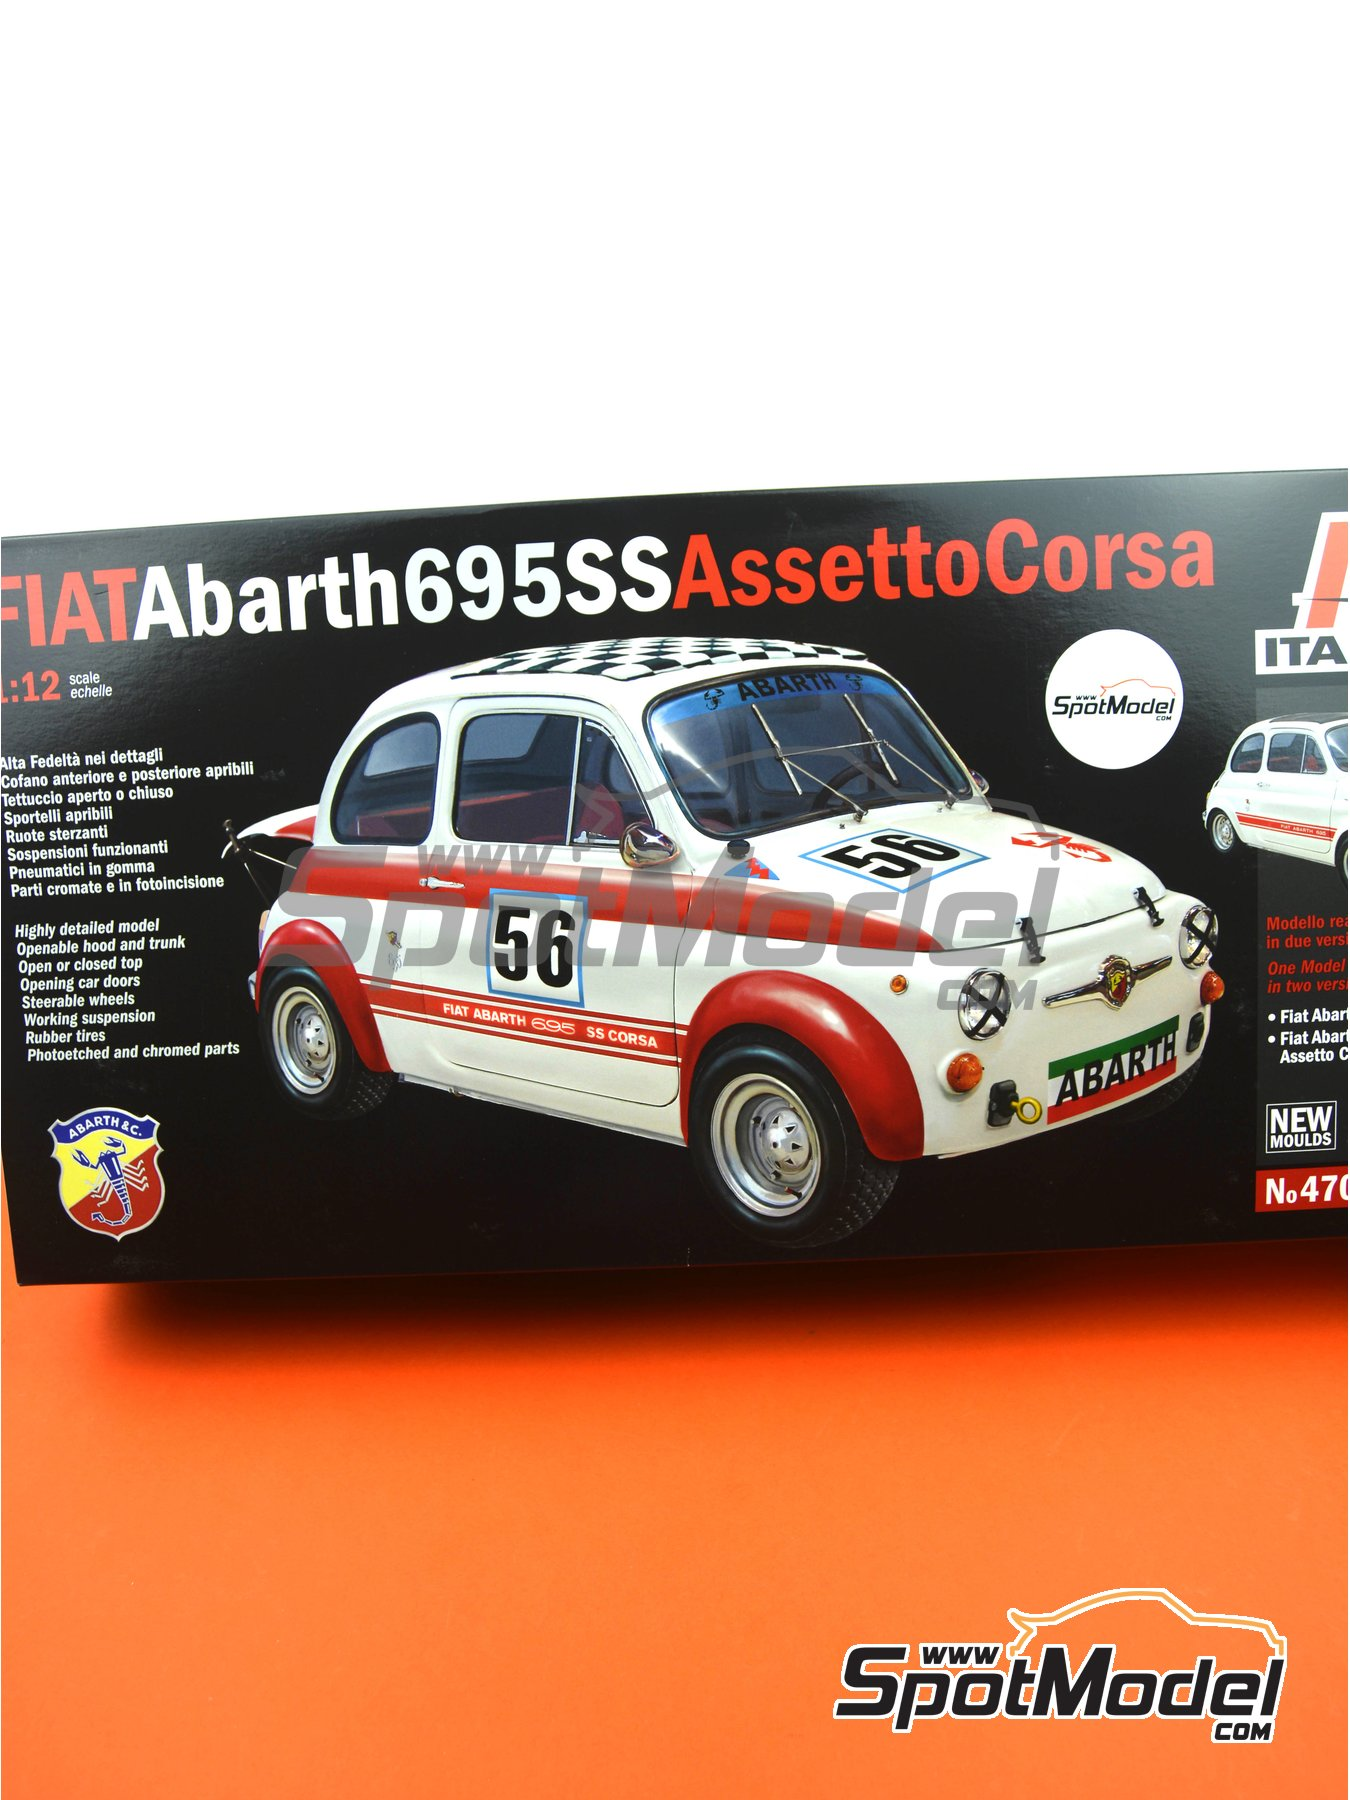 Fiat Abarth 695 SS Assetto Corsa | Model car kit in 1/12 scale manufactured by Italeri (ref. 4705, also ITA4705 and IT4705) image